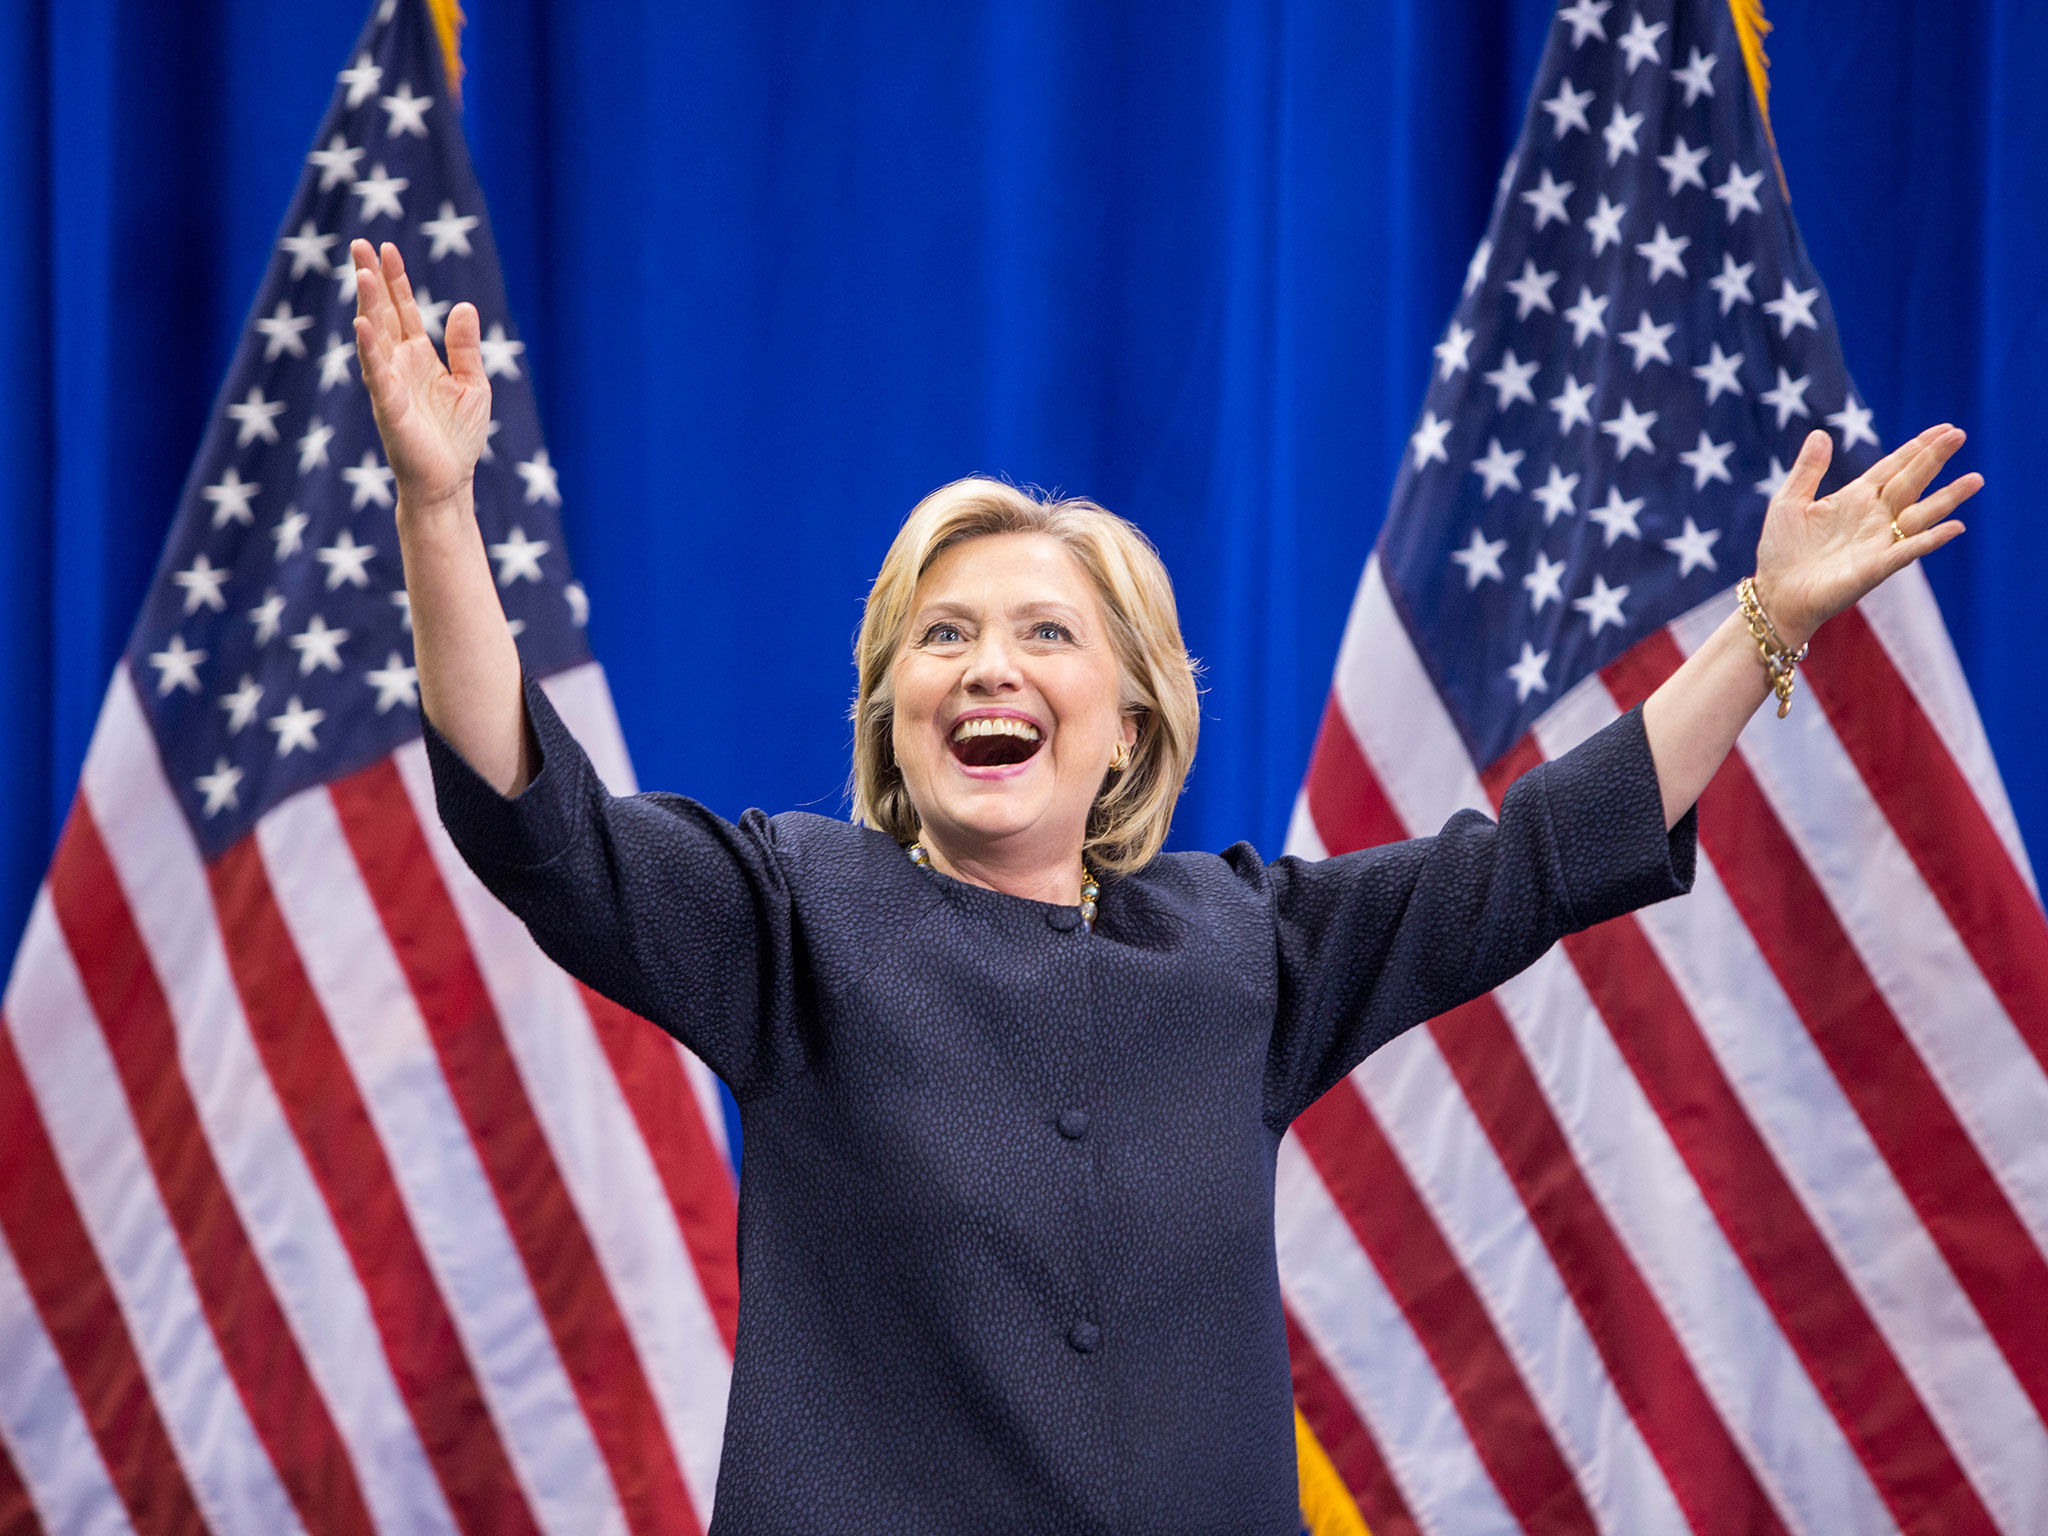 10 Hillary Clinton Plans For The United States Future